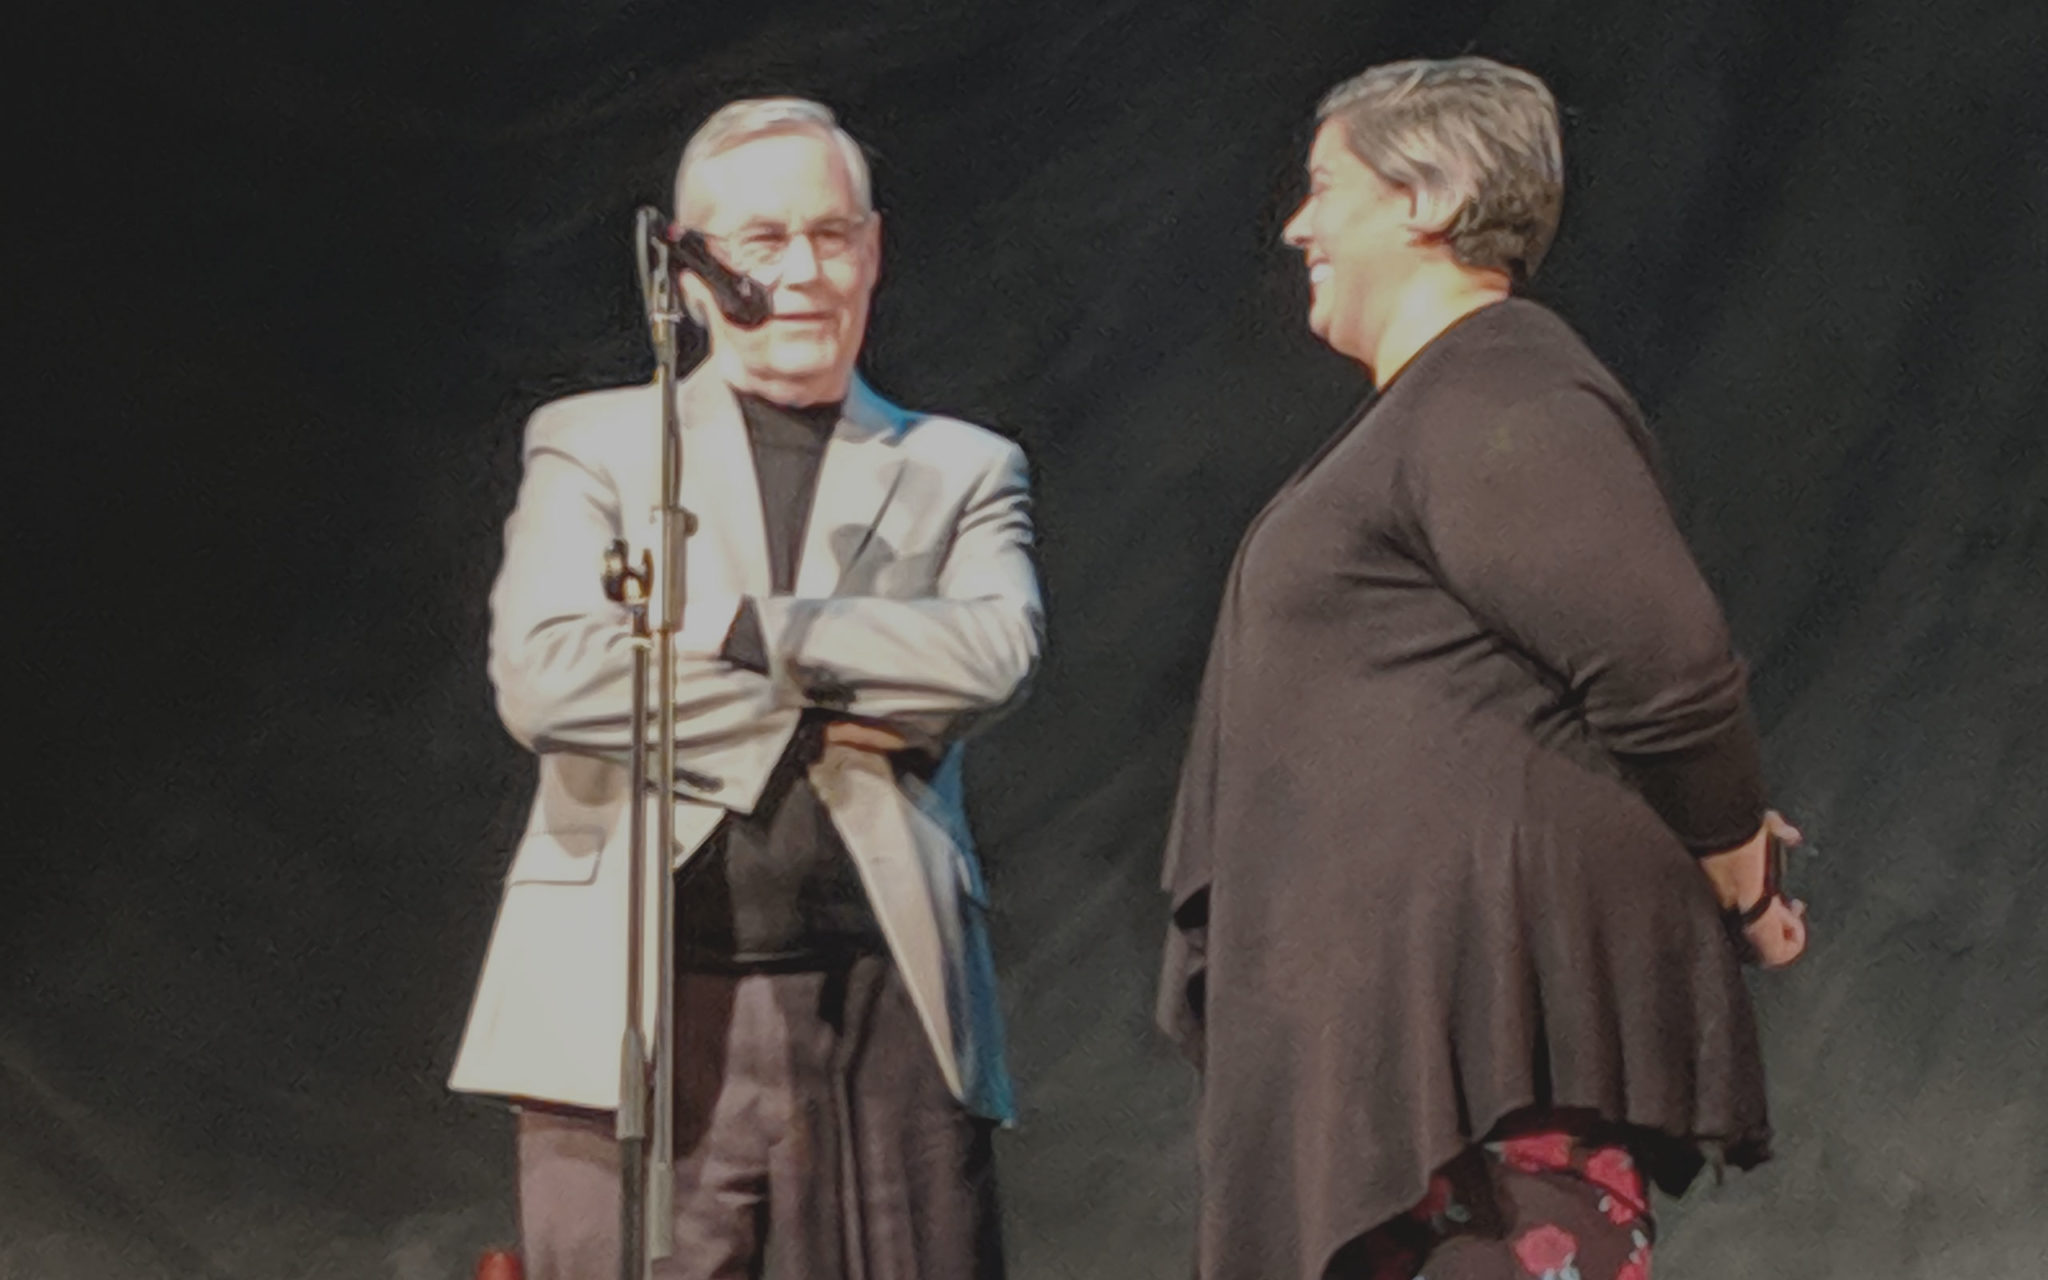 Deacon Rick Birkel and HTP Program Manager Jennifer Lucena speak at a 7 Deadly Sins performance about Kenton Women's Village